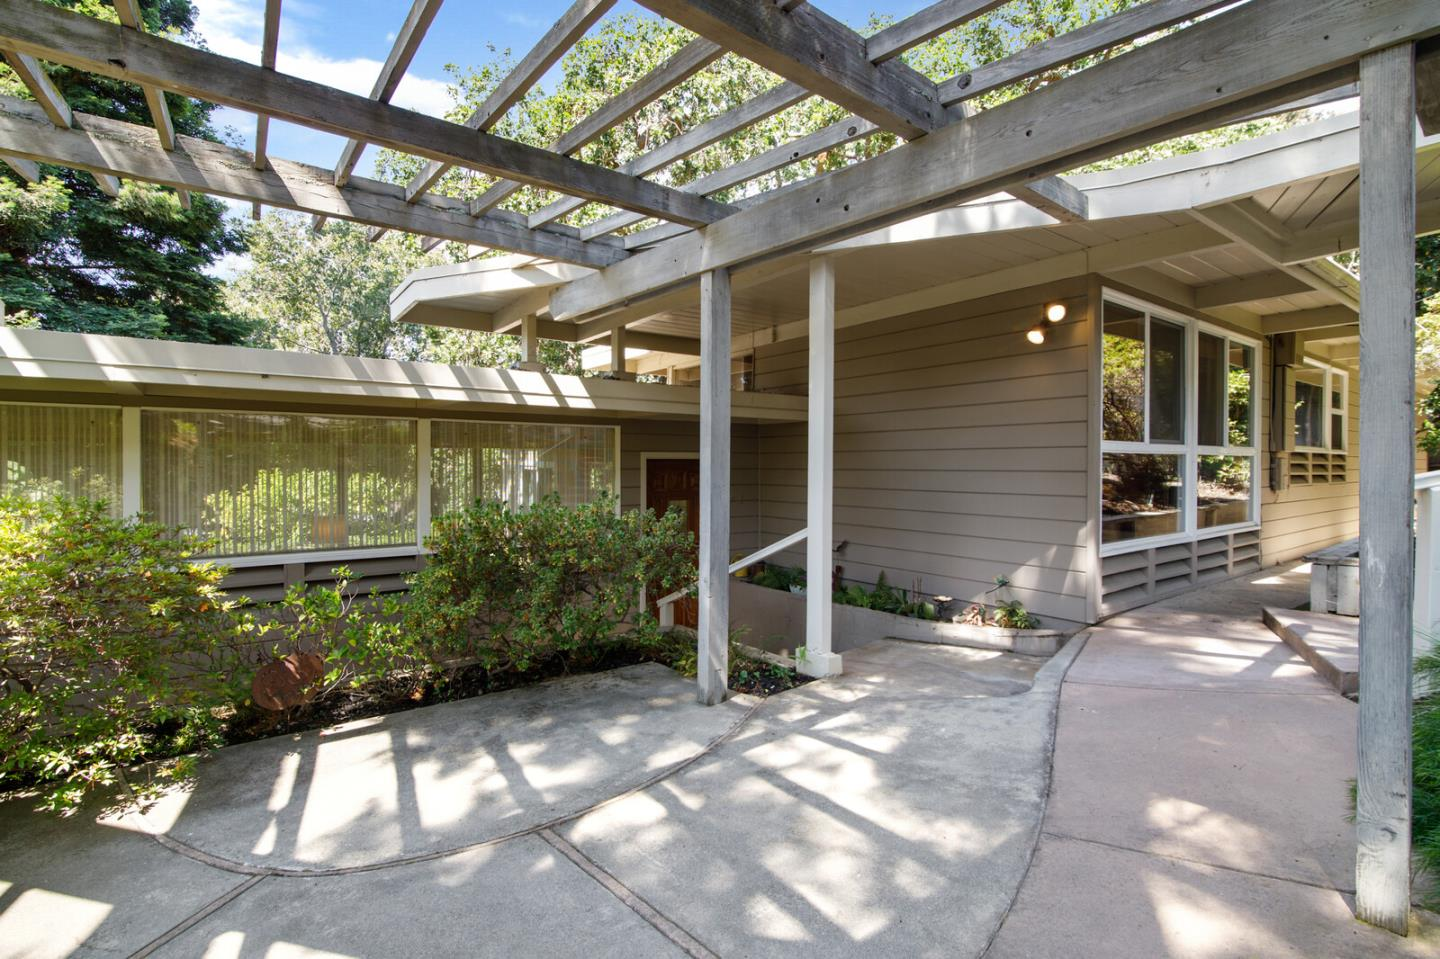 Fall in love w/ this mid-century modern beauty! Stately pines & peaceful patio setting welcome as you enter formal LR w/ FP, while floor to ceiling windows bring nature to your door! Formal DR, counter bar seating & eat-in kitchen make entertaining a breeze. Built in office nook & laundry room lead directly to garden w/ grapefruit & lemon trees, perfect for weekend BBQs, birthday parties & dining al fresco. Relax on the redwood deck w/ built in benches & flat lawn area beneath majestic redwoods & oak tree canopy. Primary BR provides a cozy retreat w/ FP, convenient backyard access, en suite bath and 2 walk-in closets! 2nd bath & 2 additional BRs conveniently located off main hall, each showing nicely w/ double closets & morning sun. Carpets, tile flooring, beamed ceilings & abundant storage throughout, as well as Eichler-like architectural style complete the story in a truly one-of-a-kind home. Walking distance to parks, schools & Downtown San Carlos make for the ideal location!